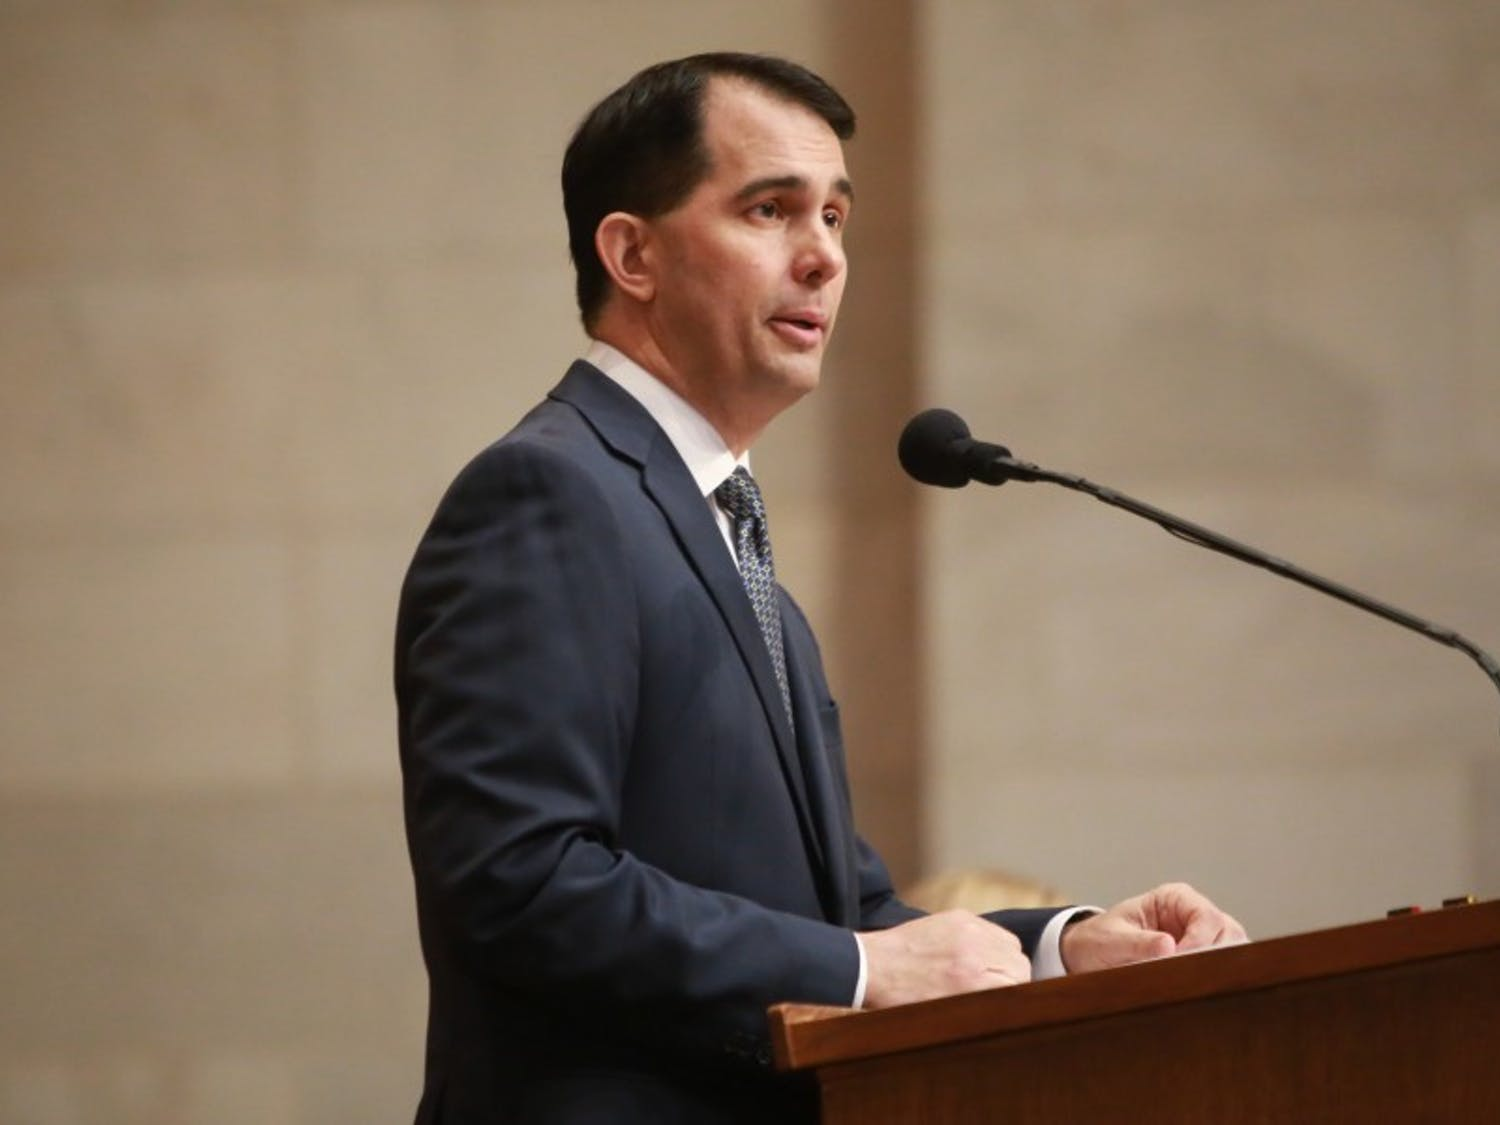 Gov. Scott Walker signed a $3 million subsidy for the Taiwanese electronics company Foxconn Monday.